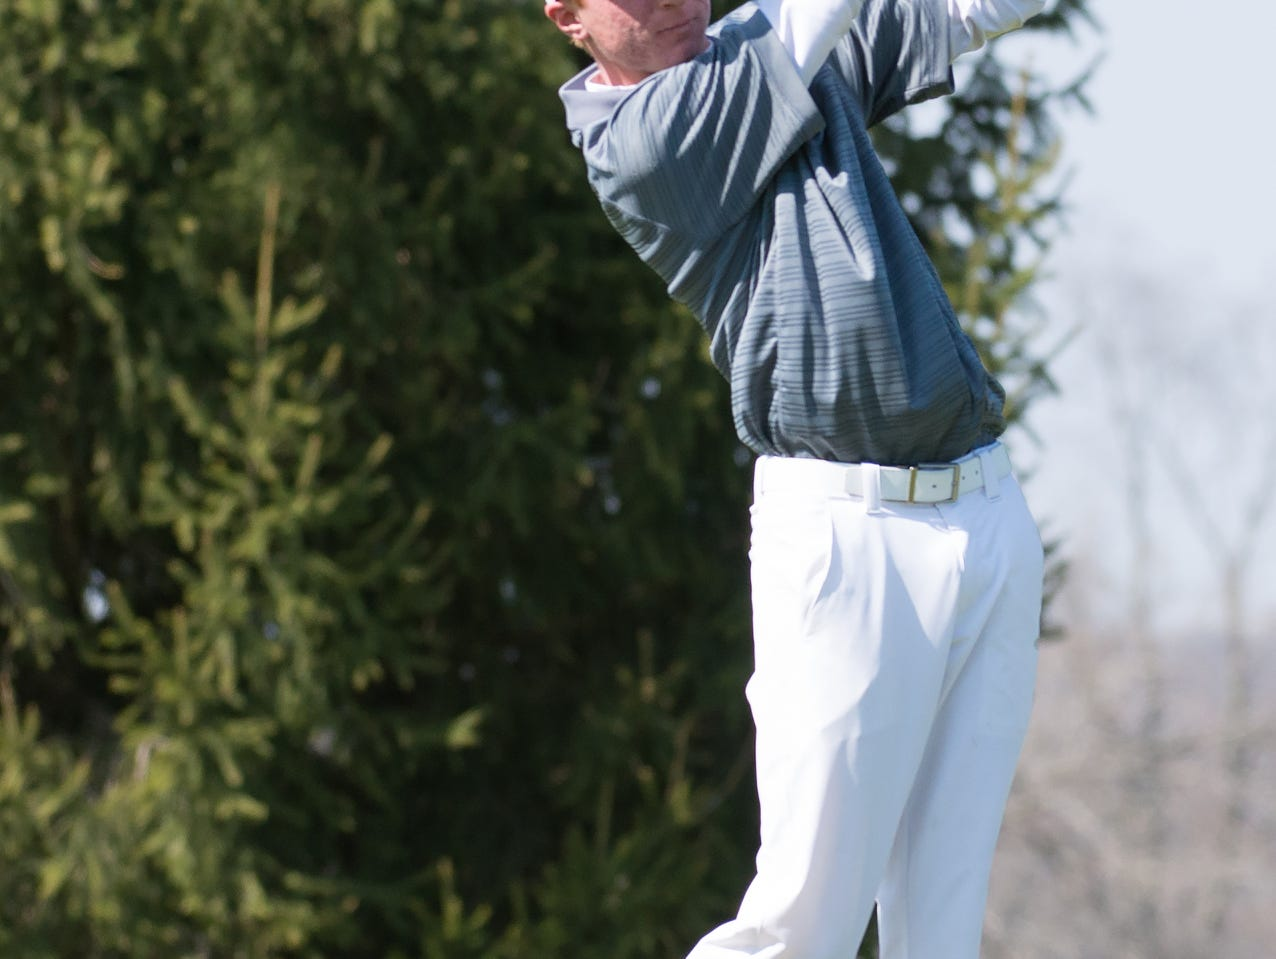 Gull Lake's Brad Wheeler tees off on the 11th hole Thursday afternoon during the Lakeview Jamboree held at Cedar Creek golf course.